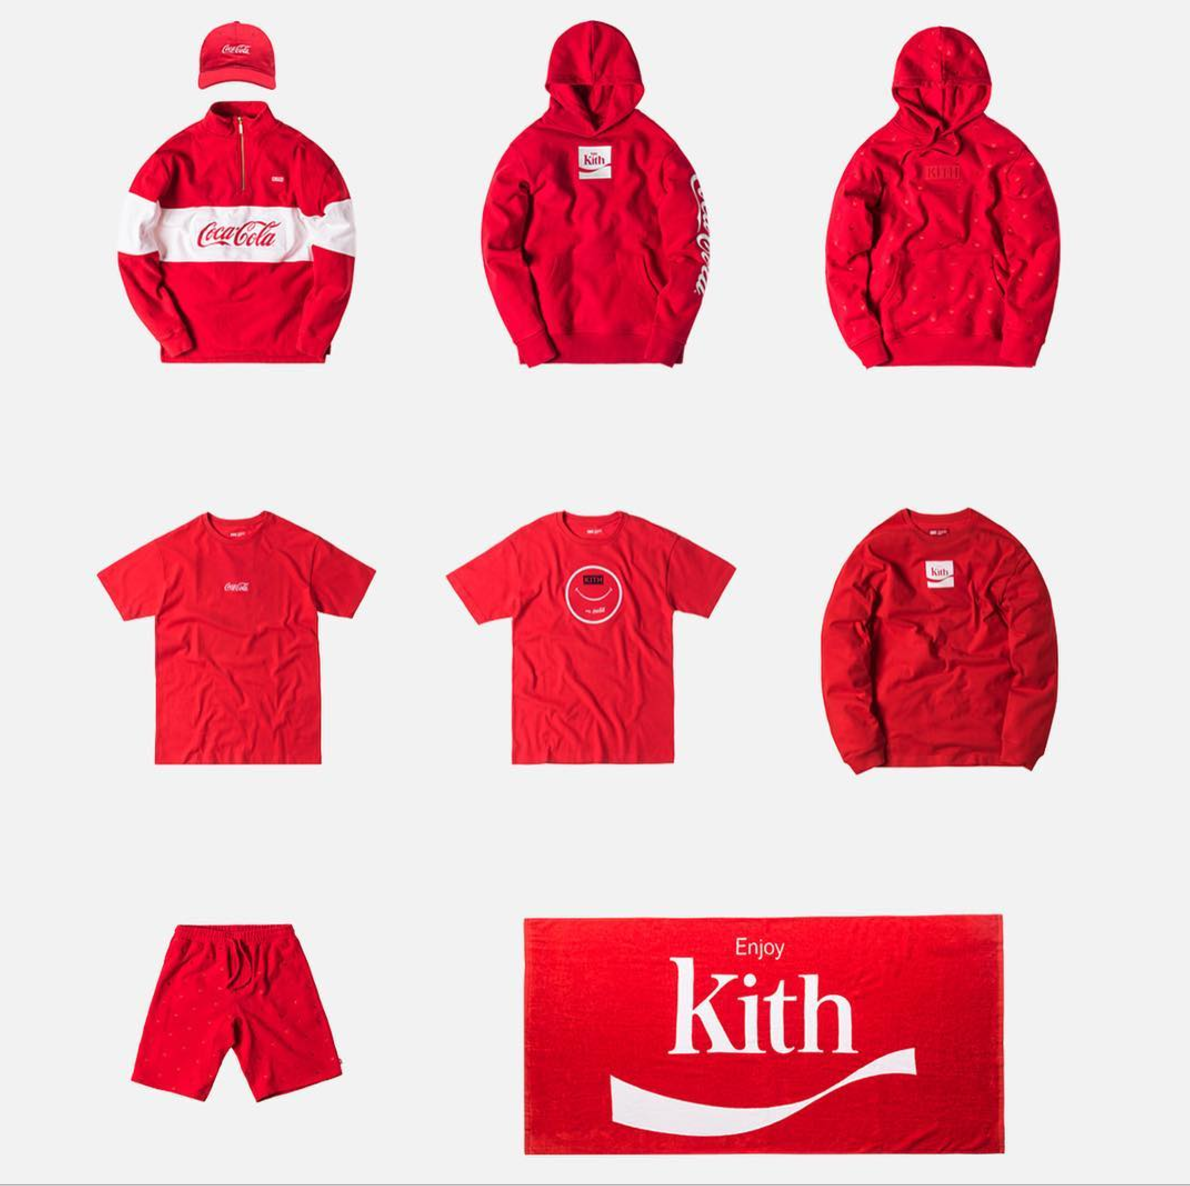 Every Piece From The Kith x Coca Cola Collaboration